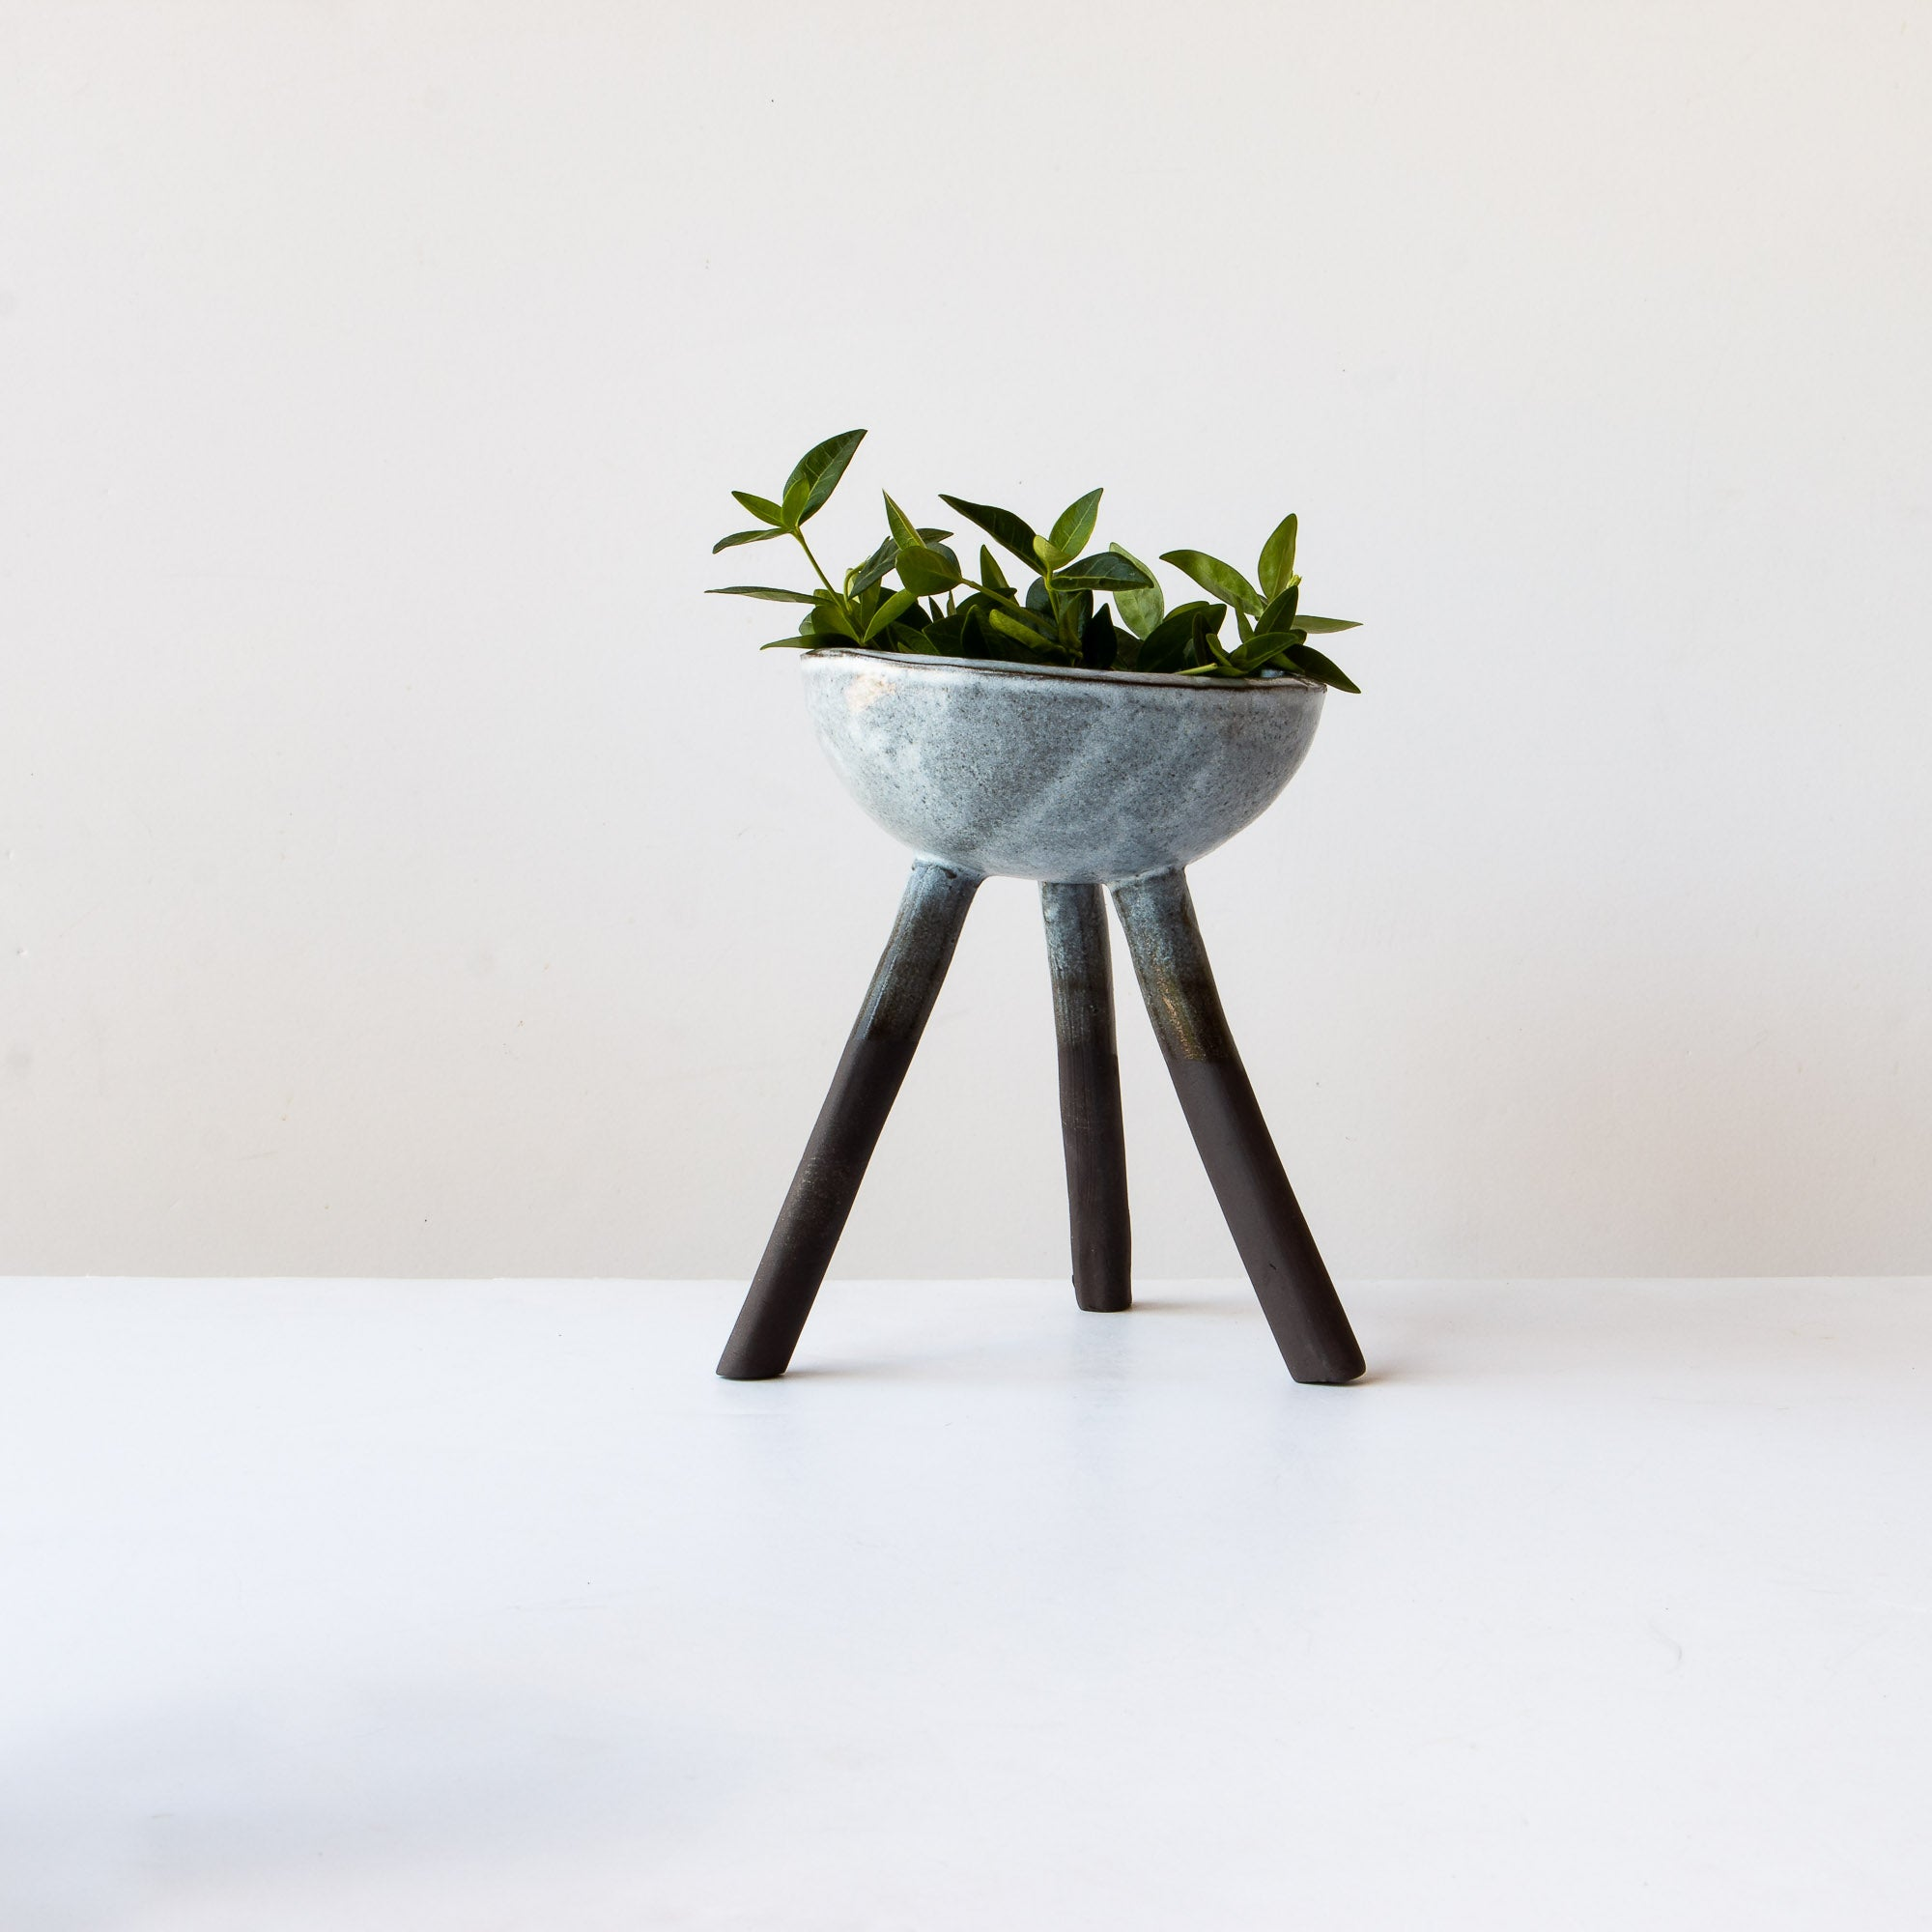 Handcrafted Stoneware Planter With 3 Legs - Grey & White - Sold by Chic & Basta